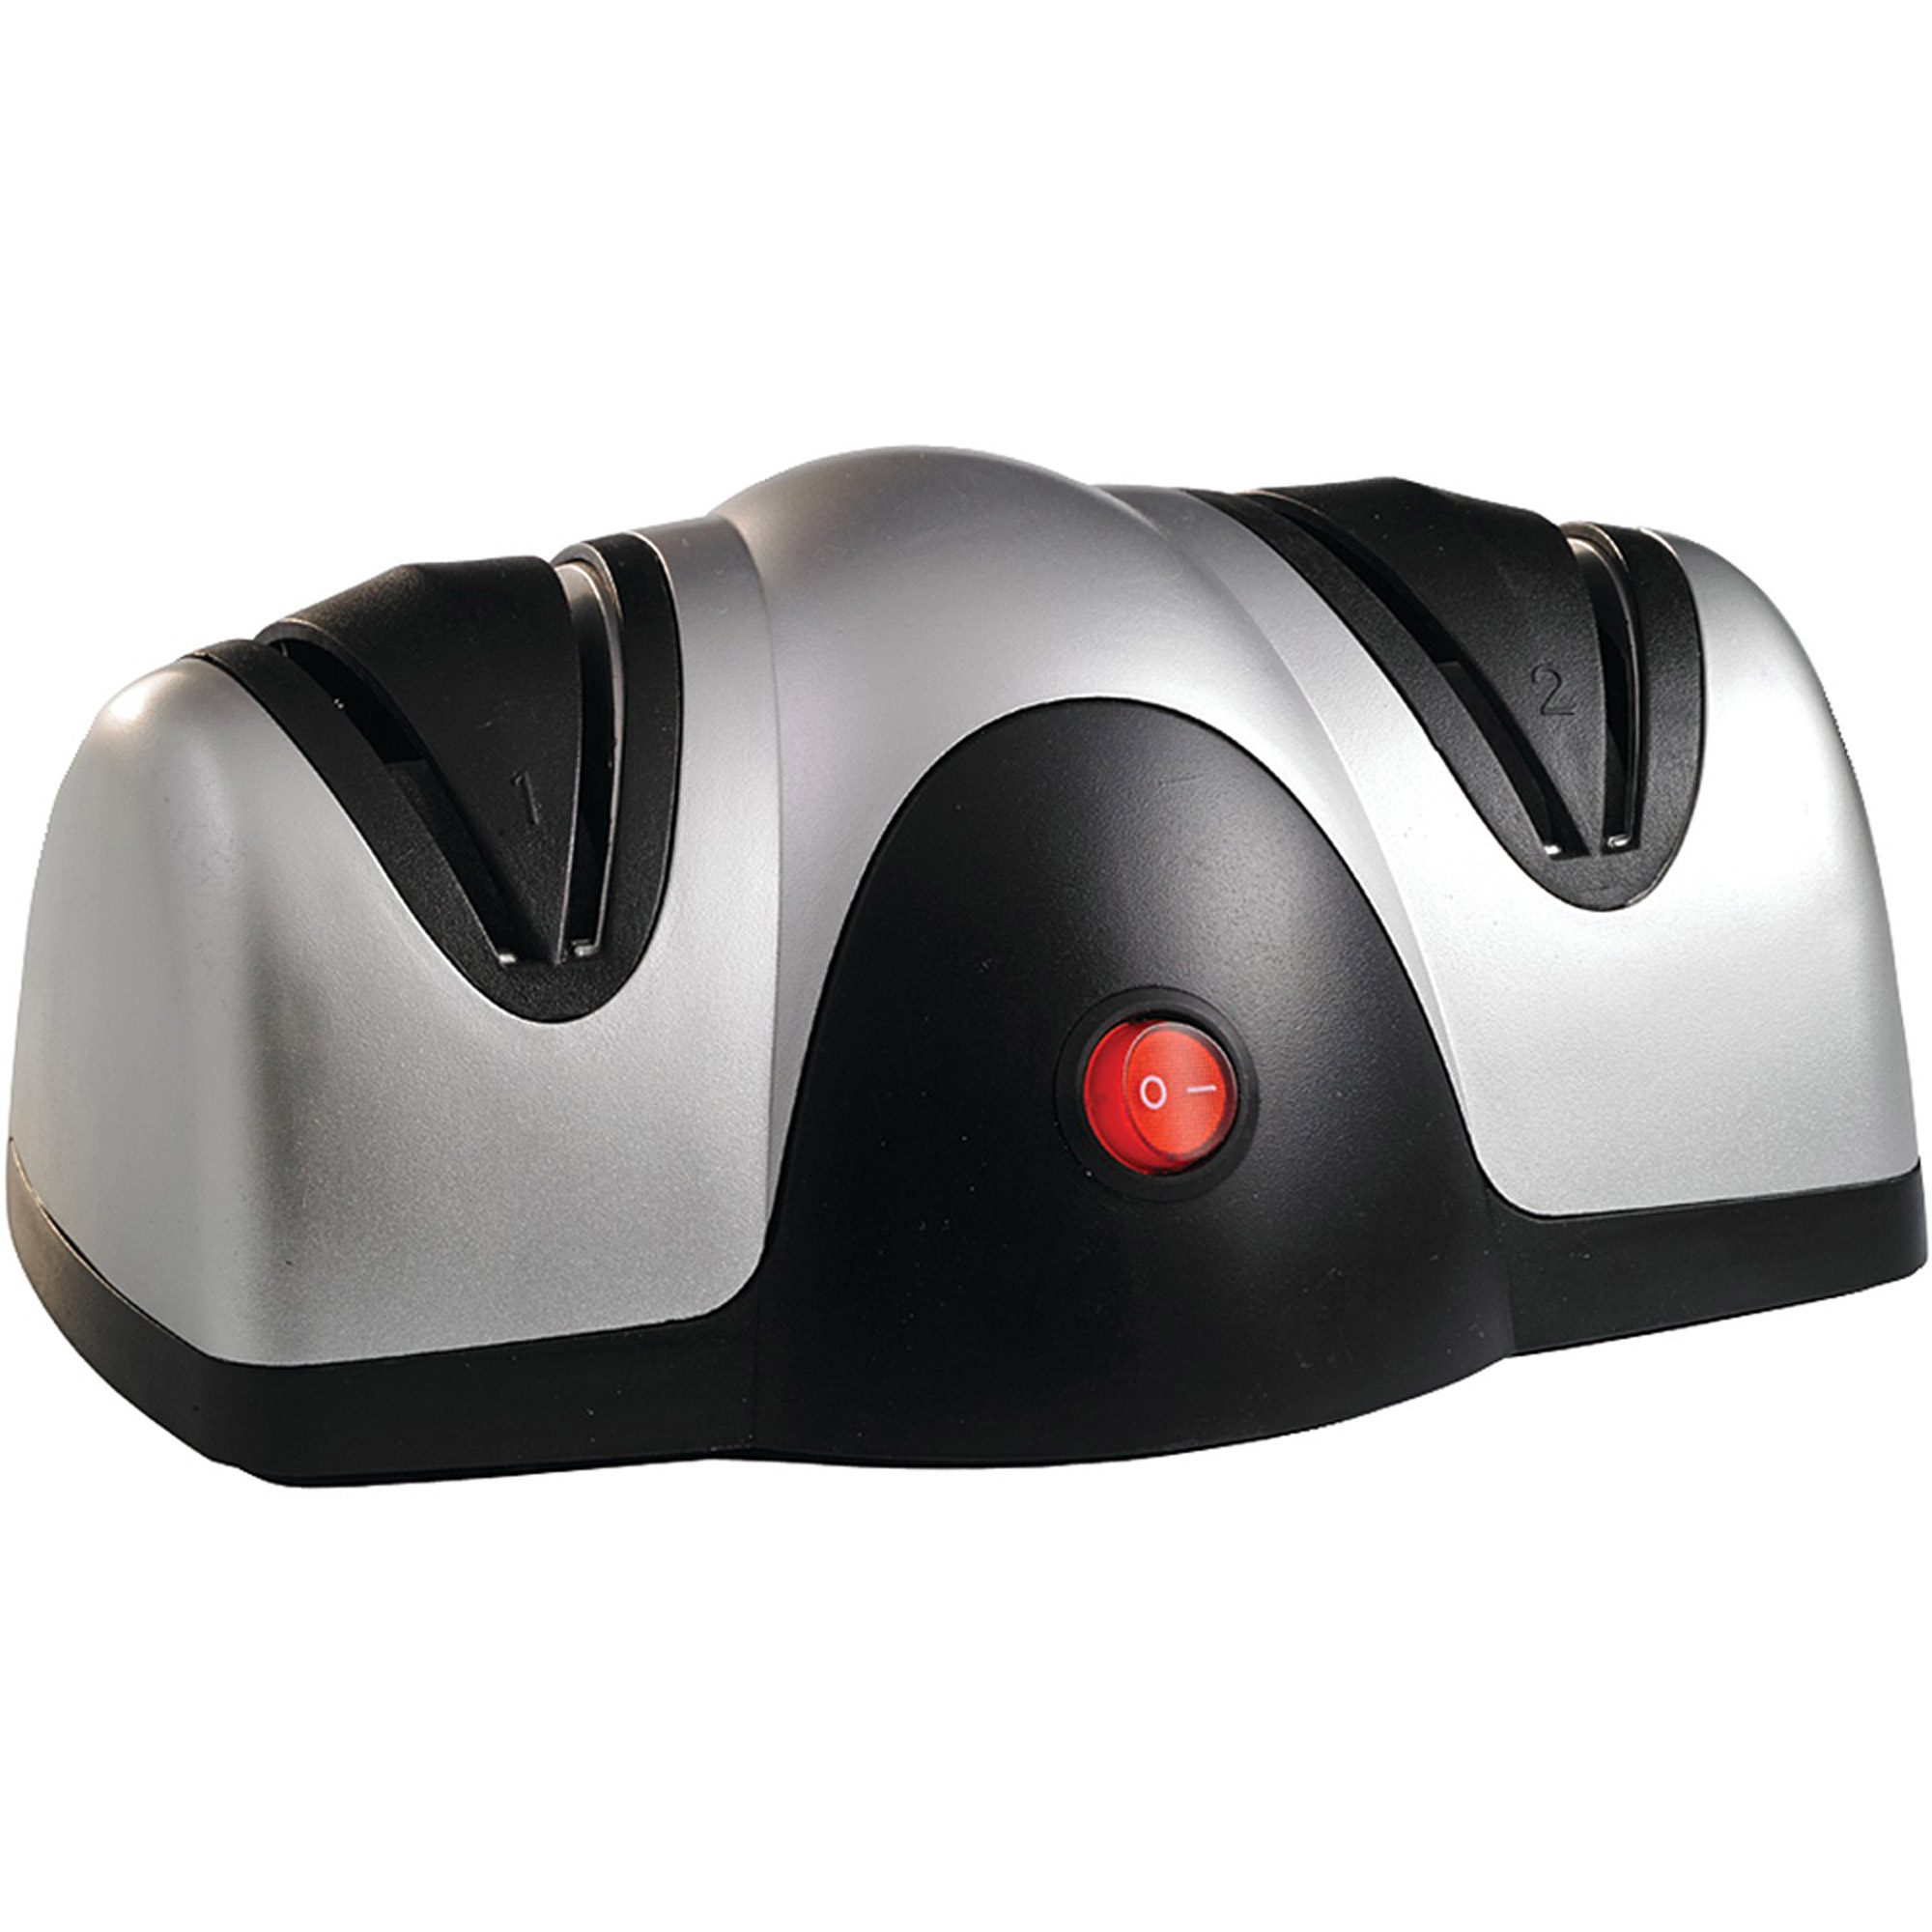 Brentwood TS-1000 Electric Knife Sharpener by Brentwood